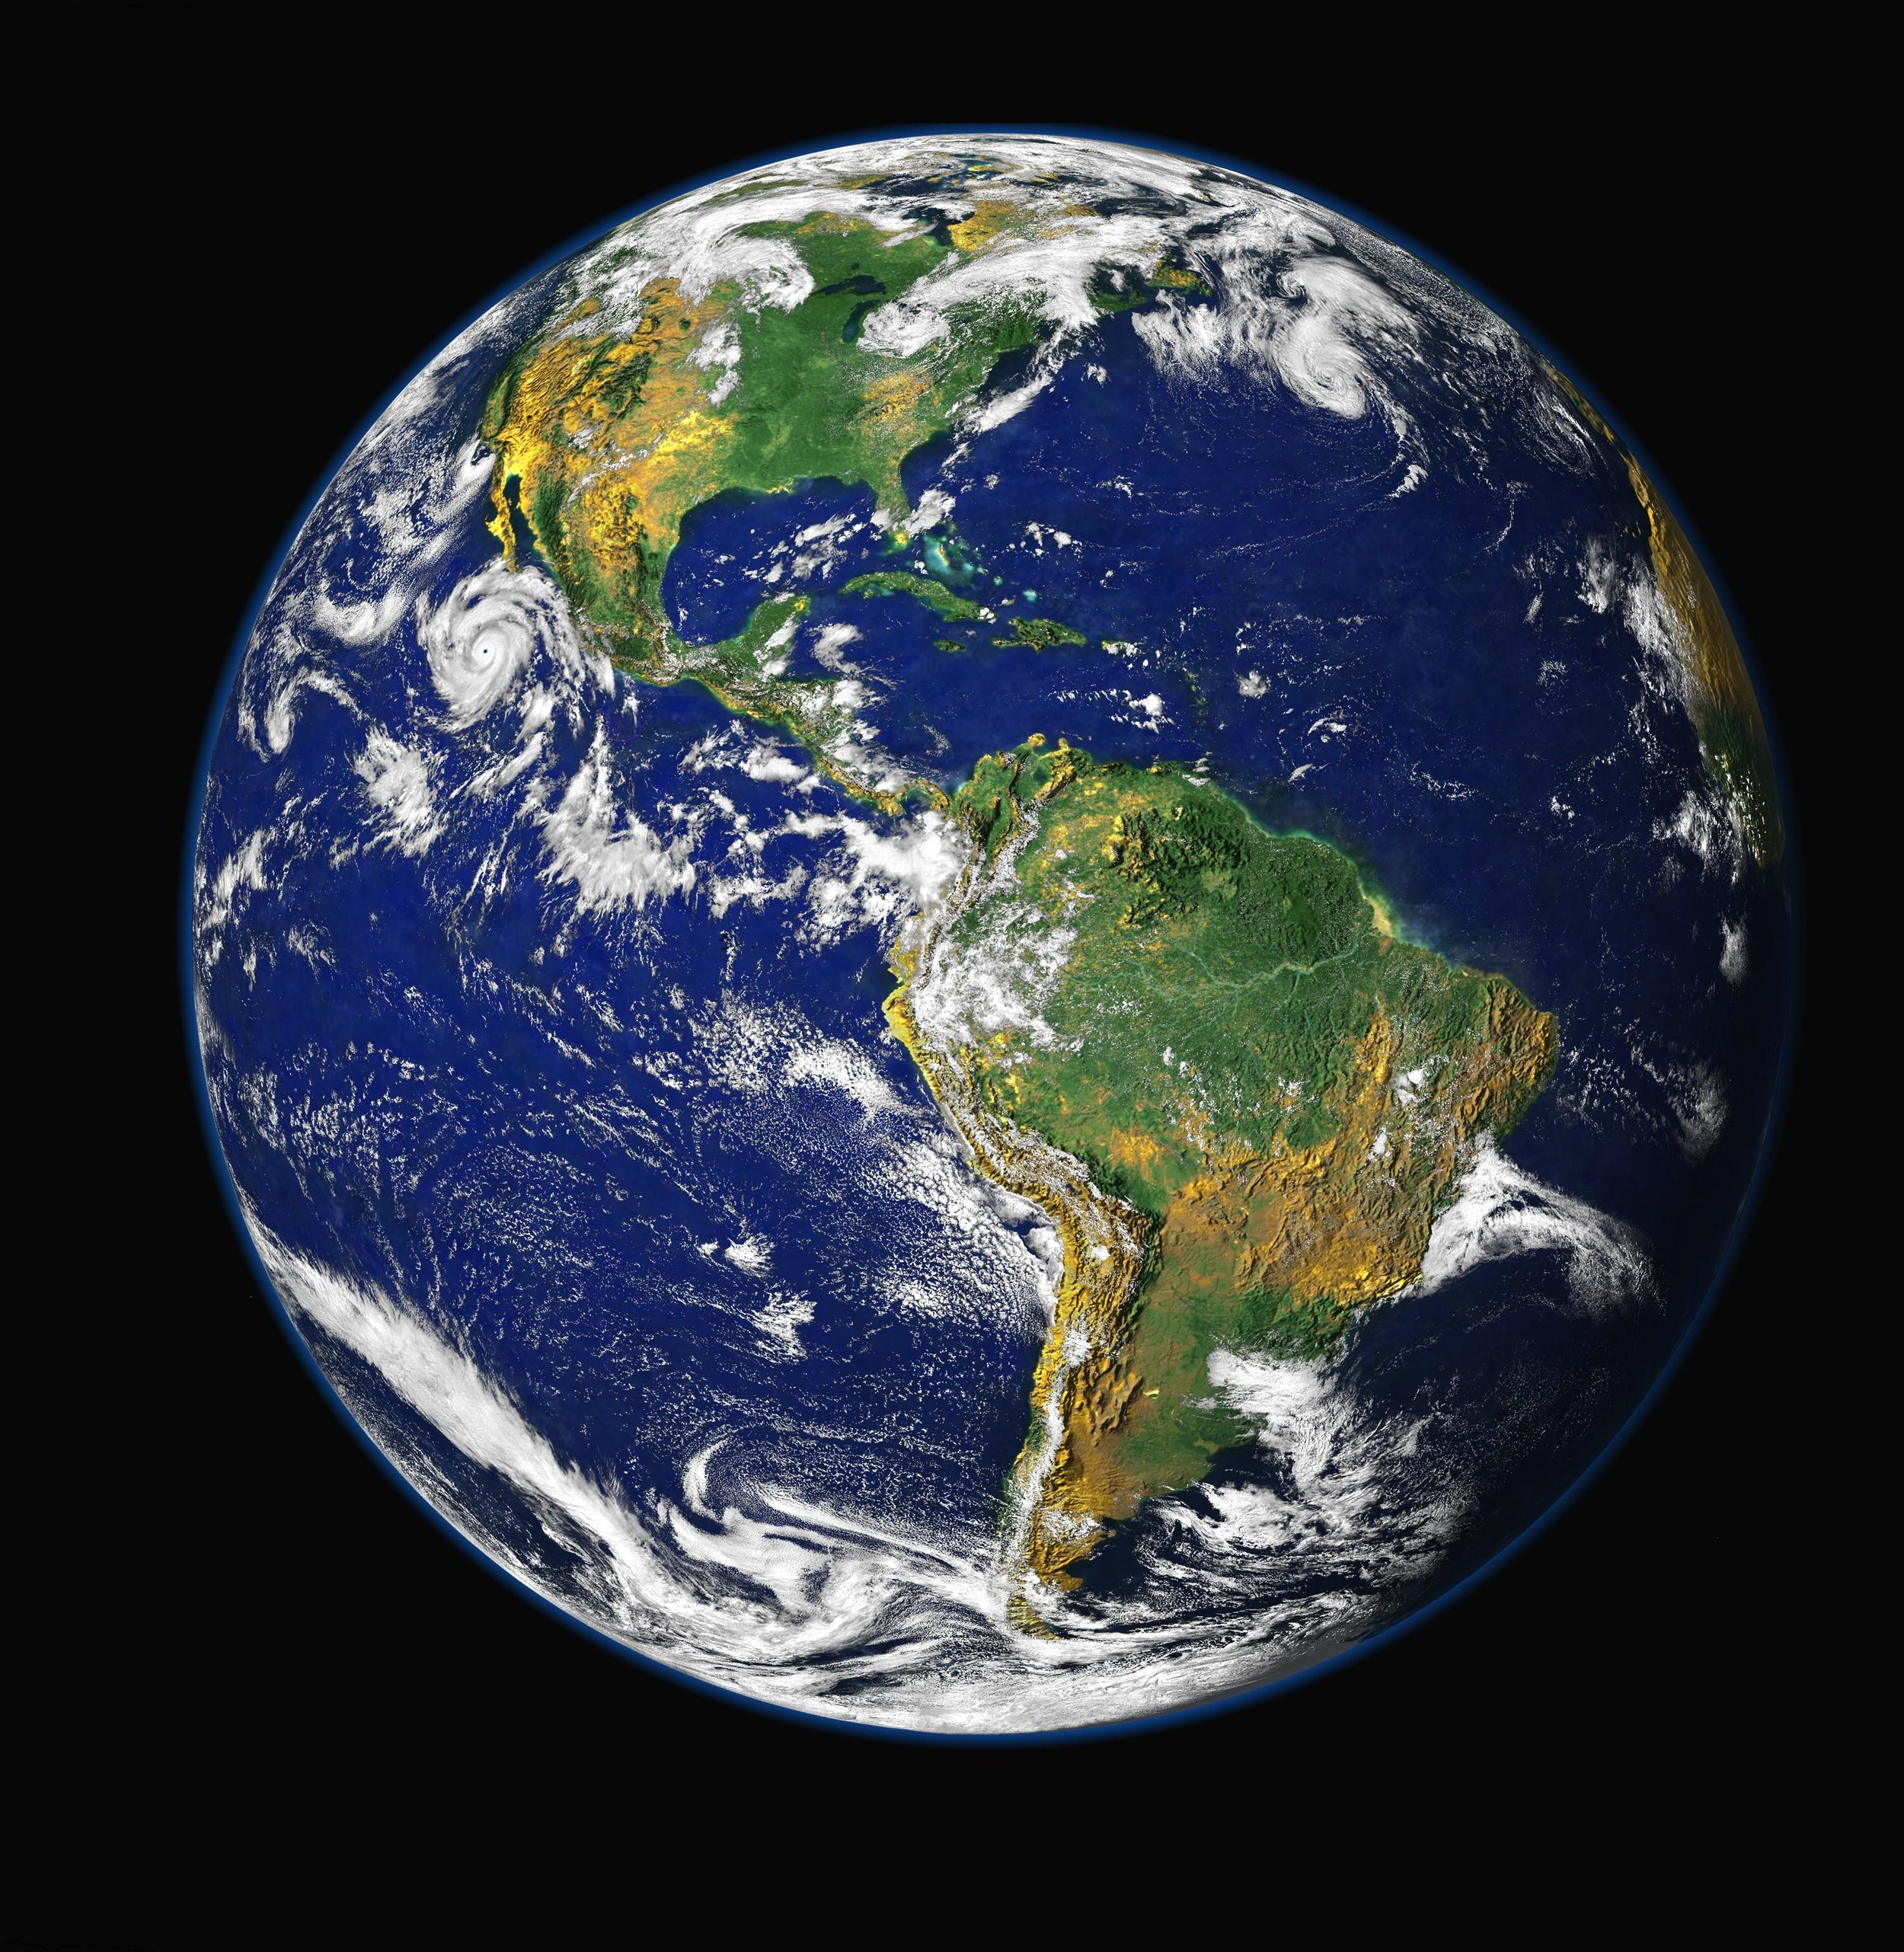 A composite image of Earth; photo by NASA/ GSFC/ NOAA/ USGS, via Wikimedia Commons